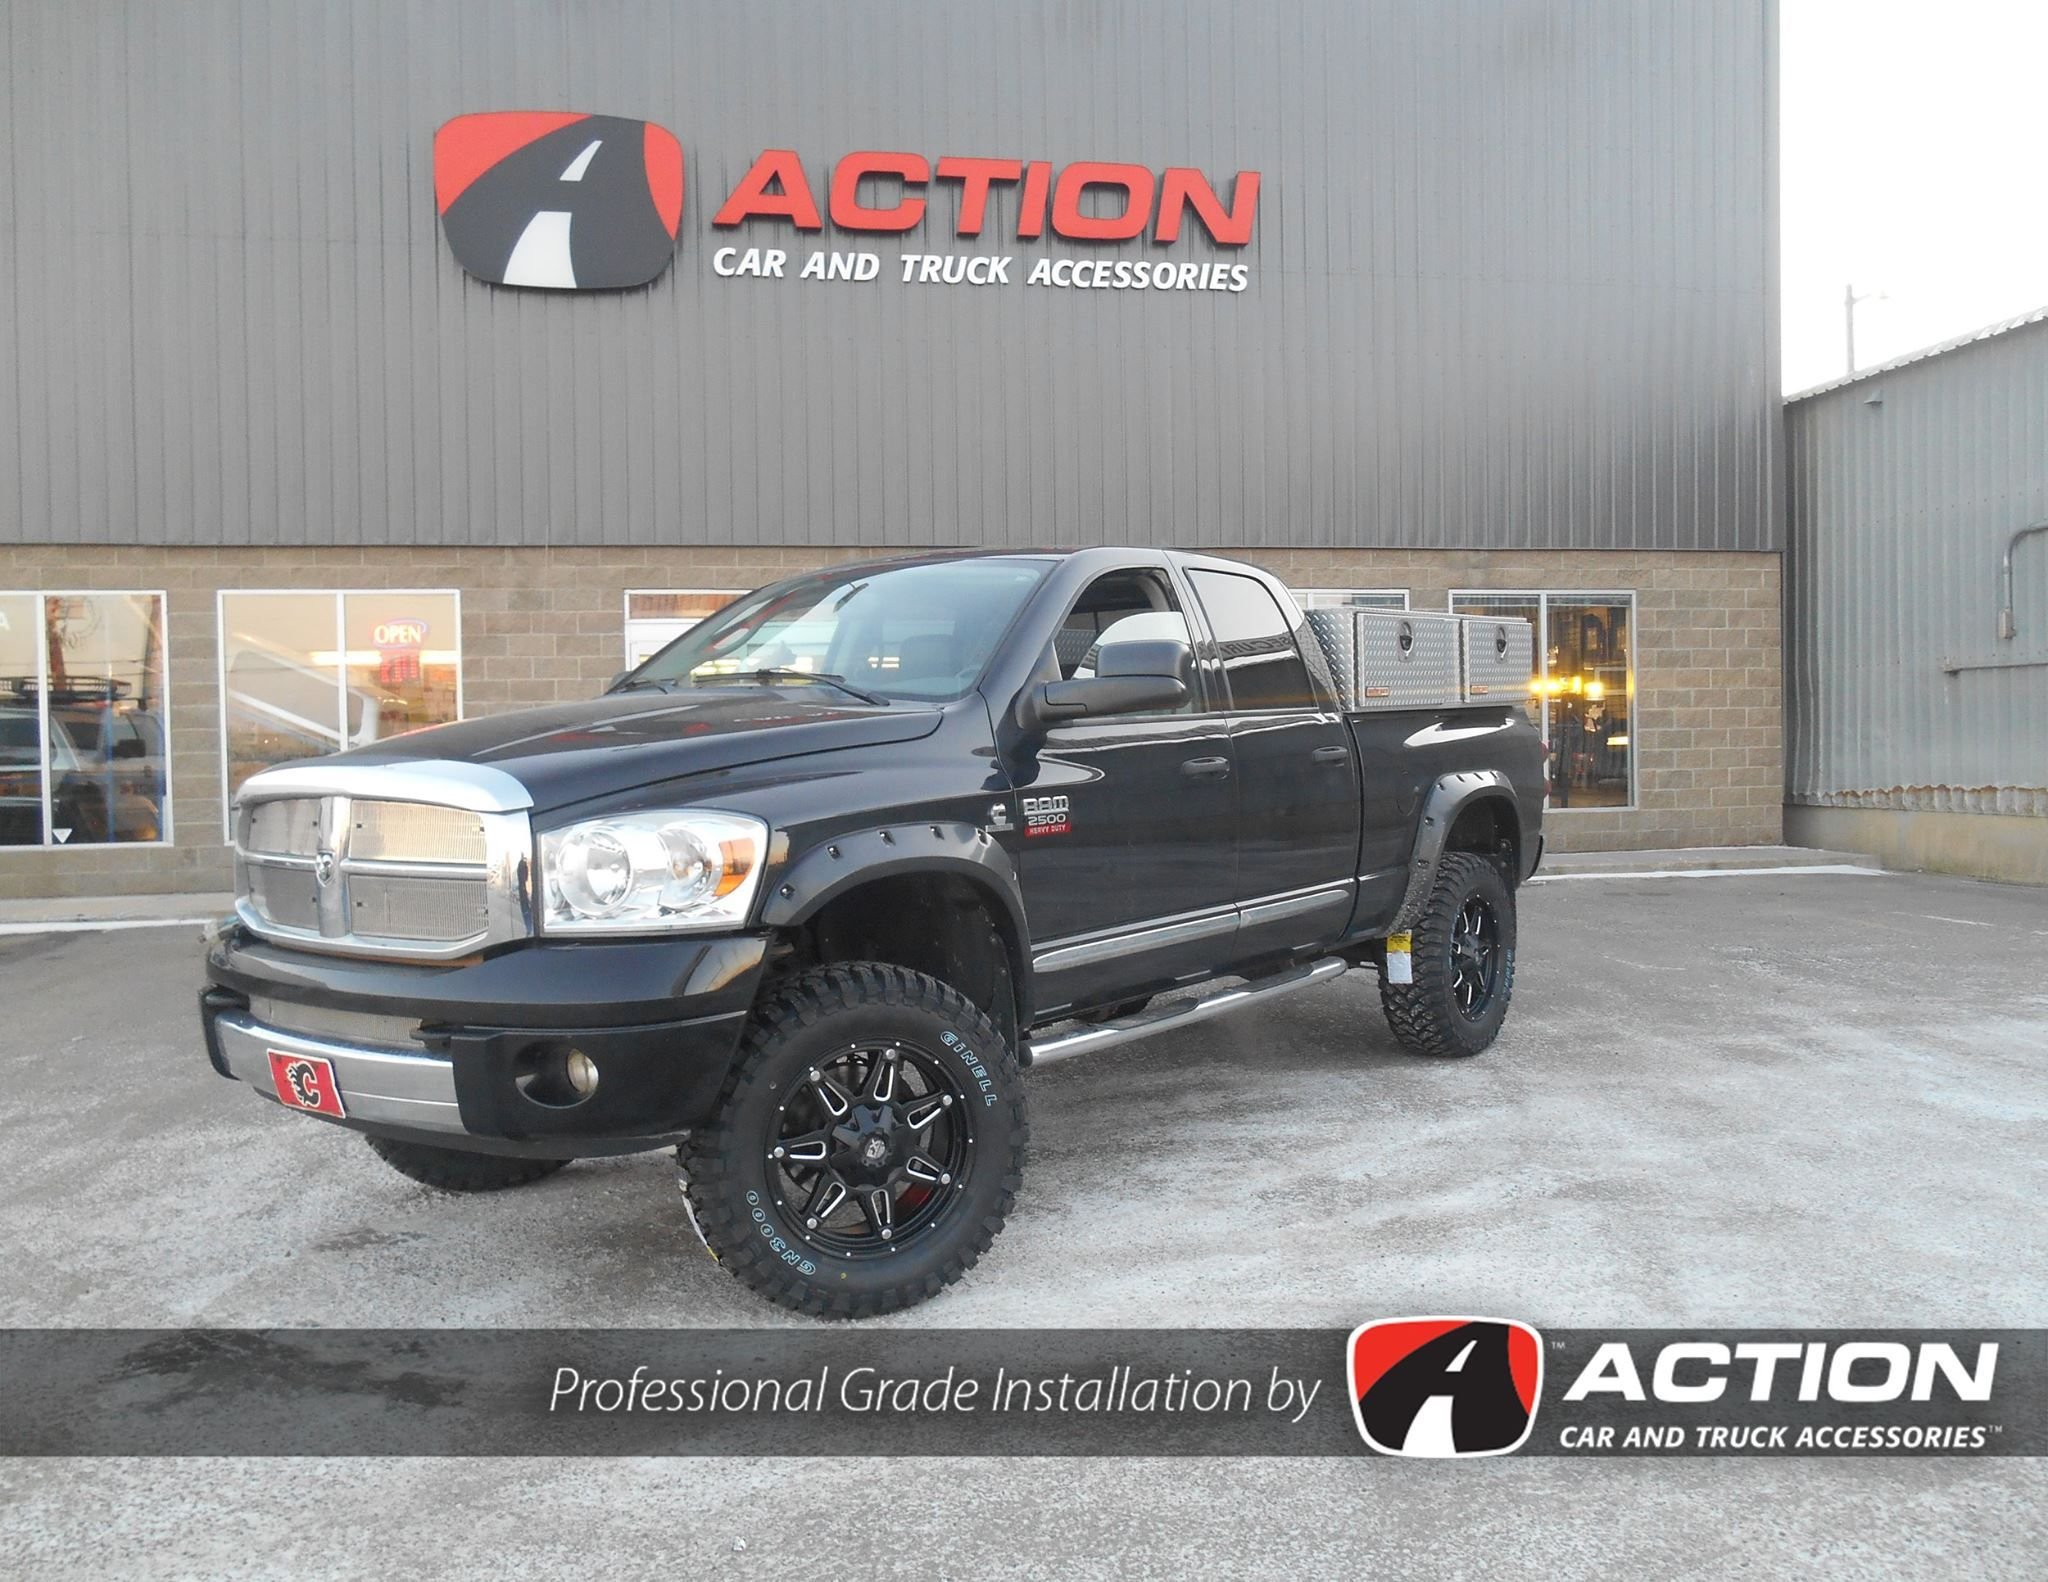 2008 ram 2500 cummins from our store in saskatoon sk installed sst lift